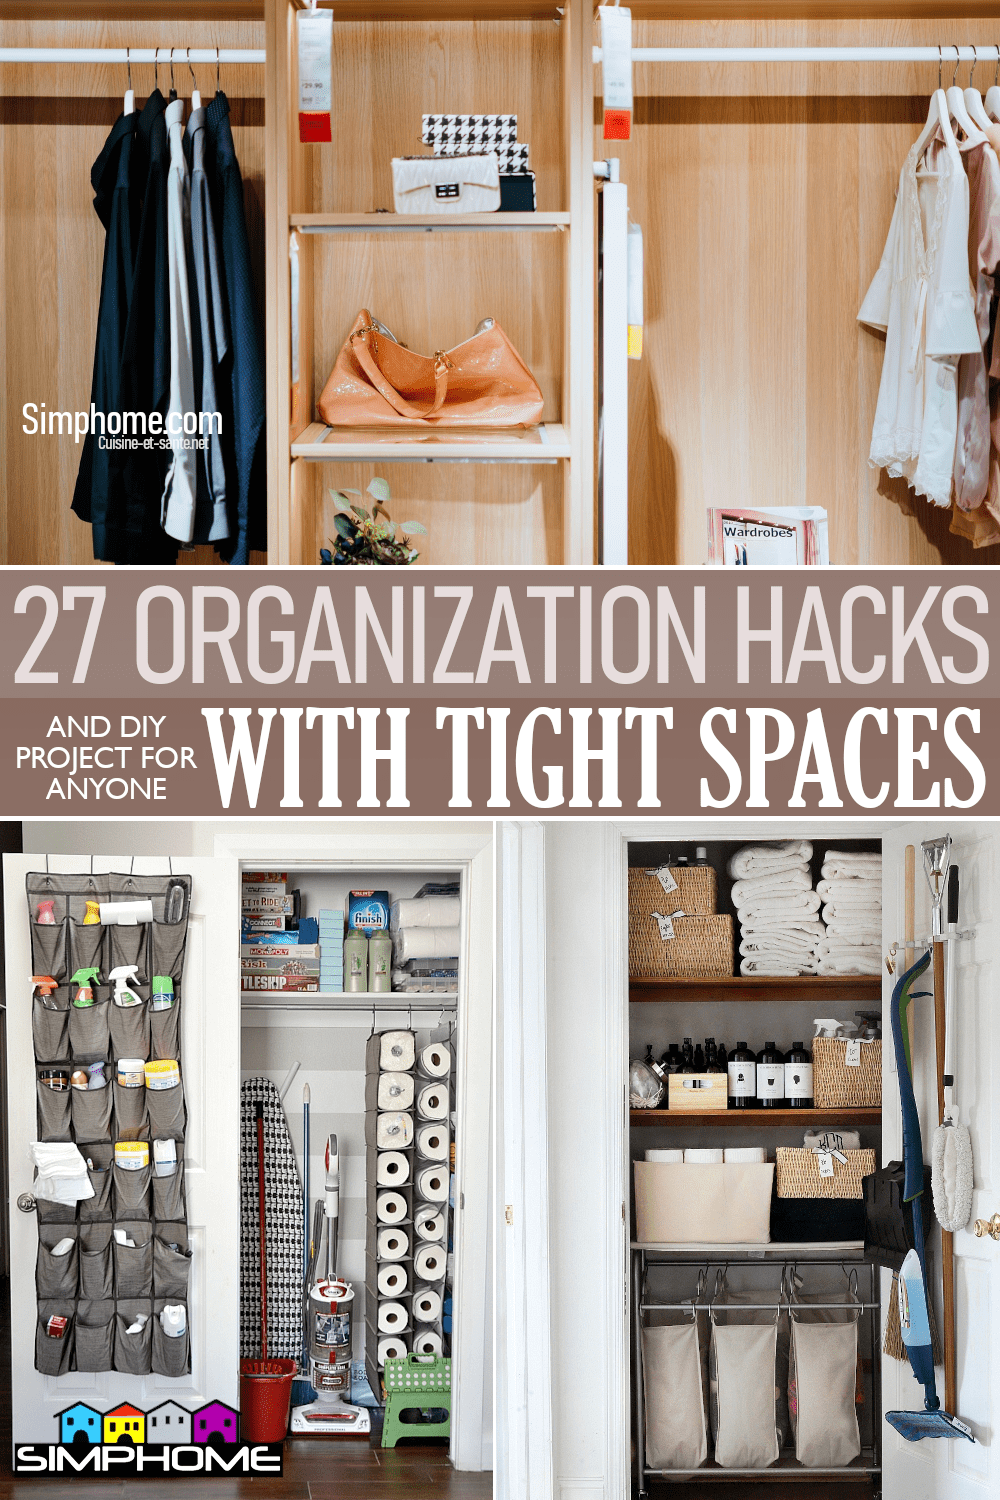 27 Organization Hacks for Small Space You Need To Know via Simphome.comFeatured